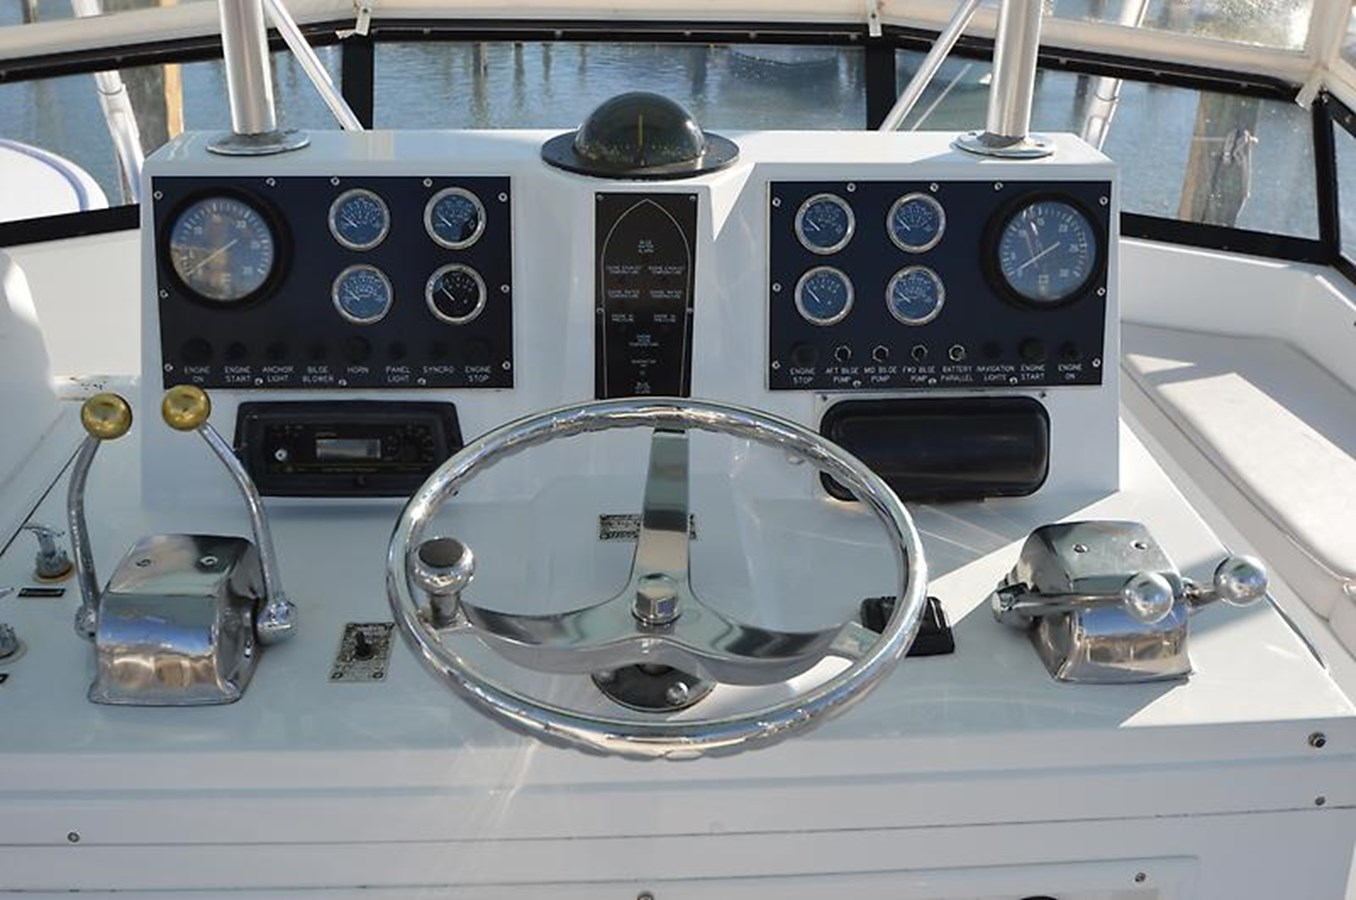 Engine Controls - 45 VIKING For Sale